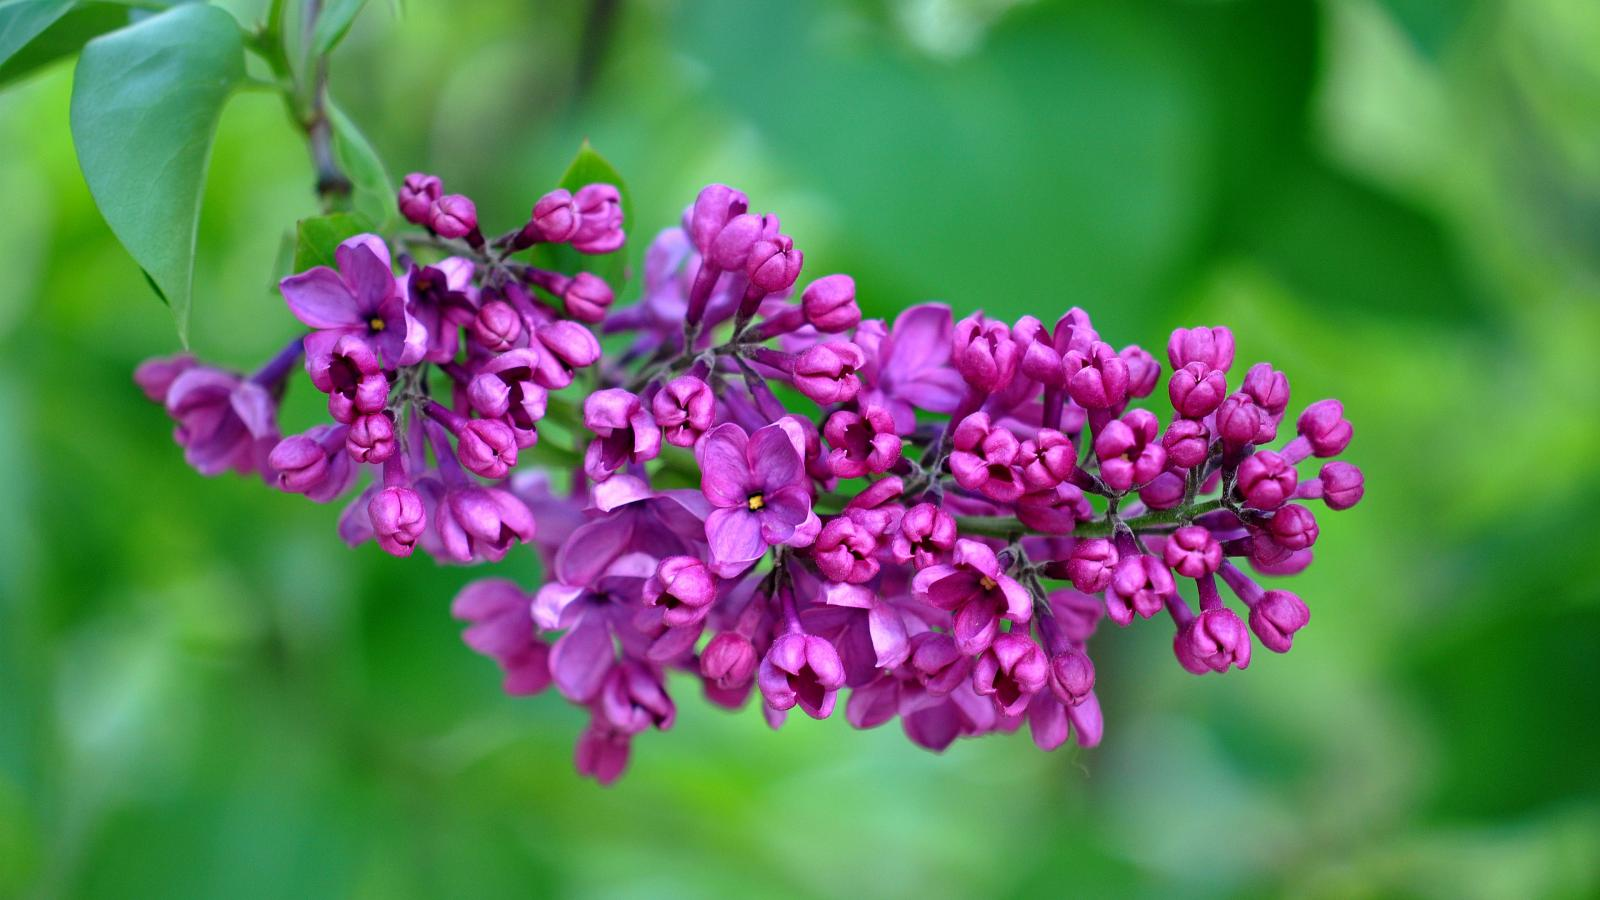 High Resolution Flower Wallpaper: 4K Wallpapers With High Resolution Images Of Purple Lilac